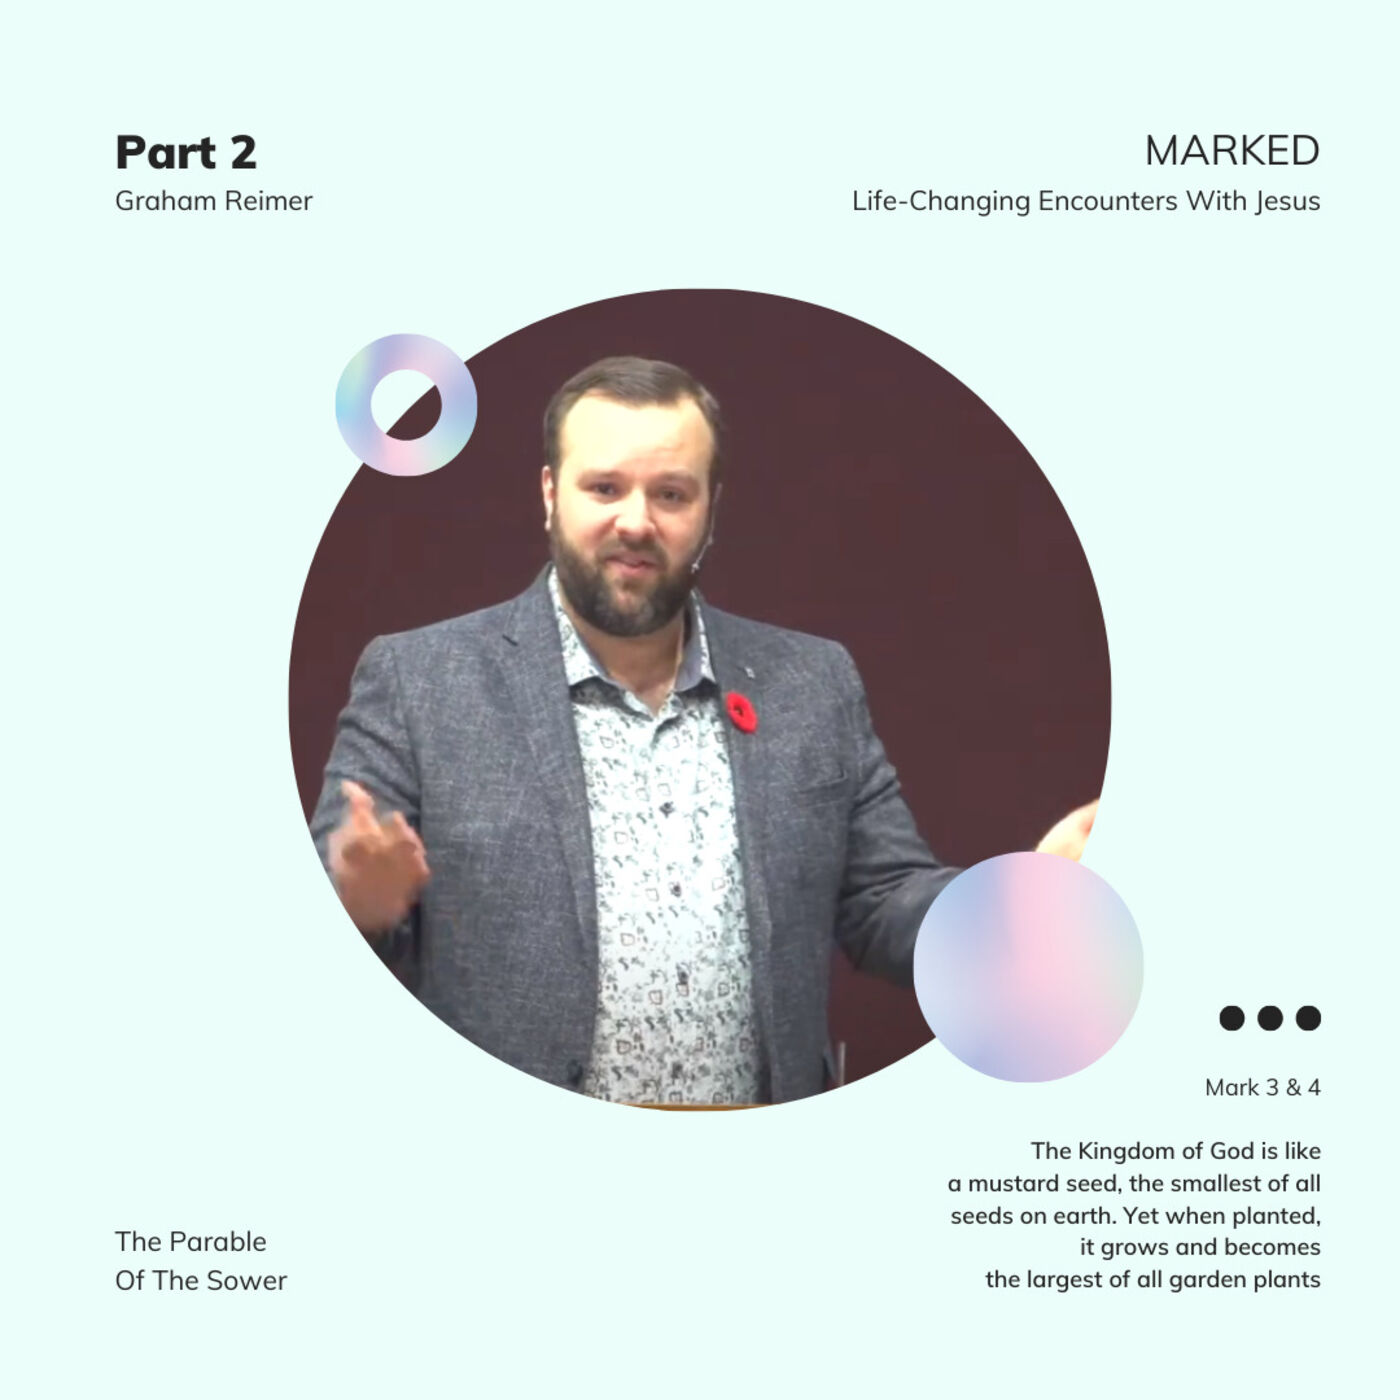 MARKED. Life-Changing Encounters With Jesus - Mark 3 & 4 - Graham Reimer